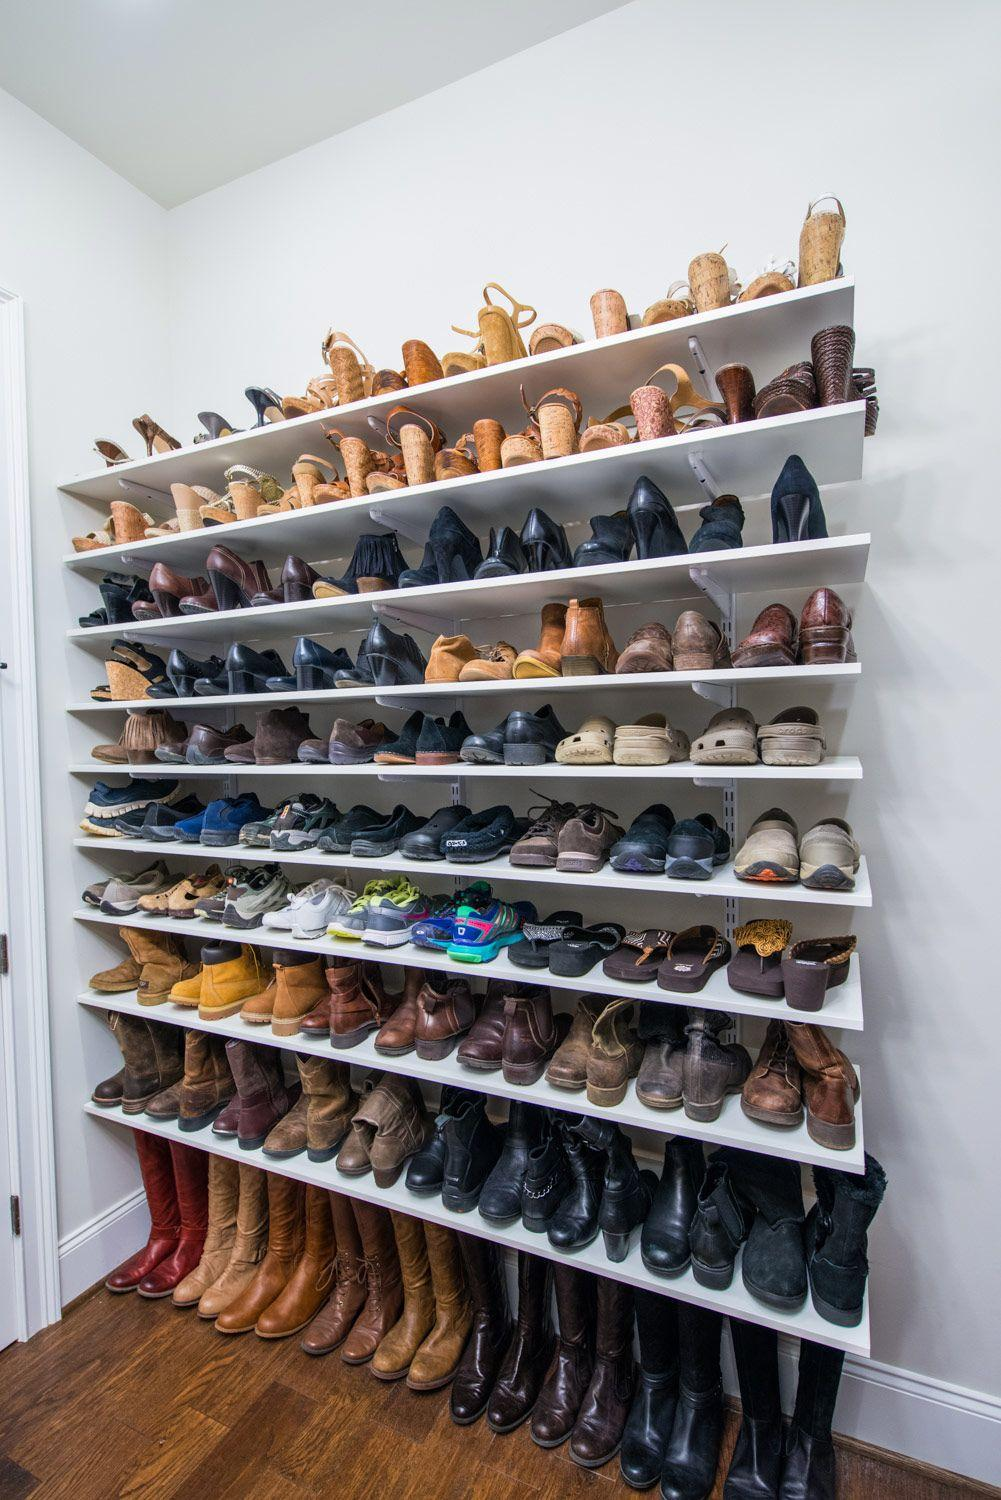 60 ideas and tips on how to organize shoes 11